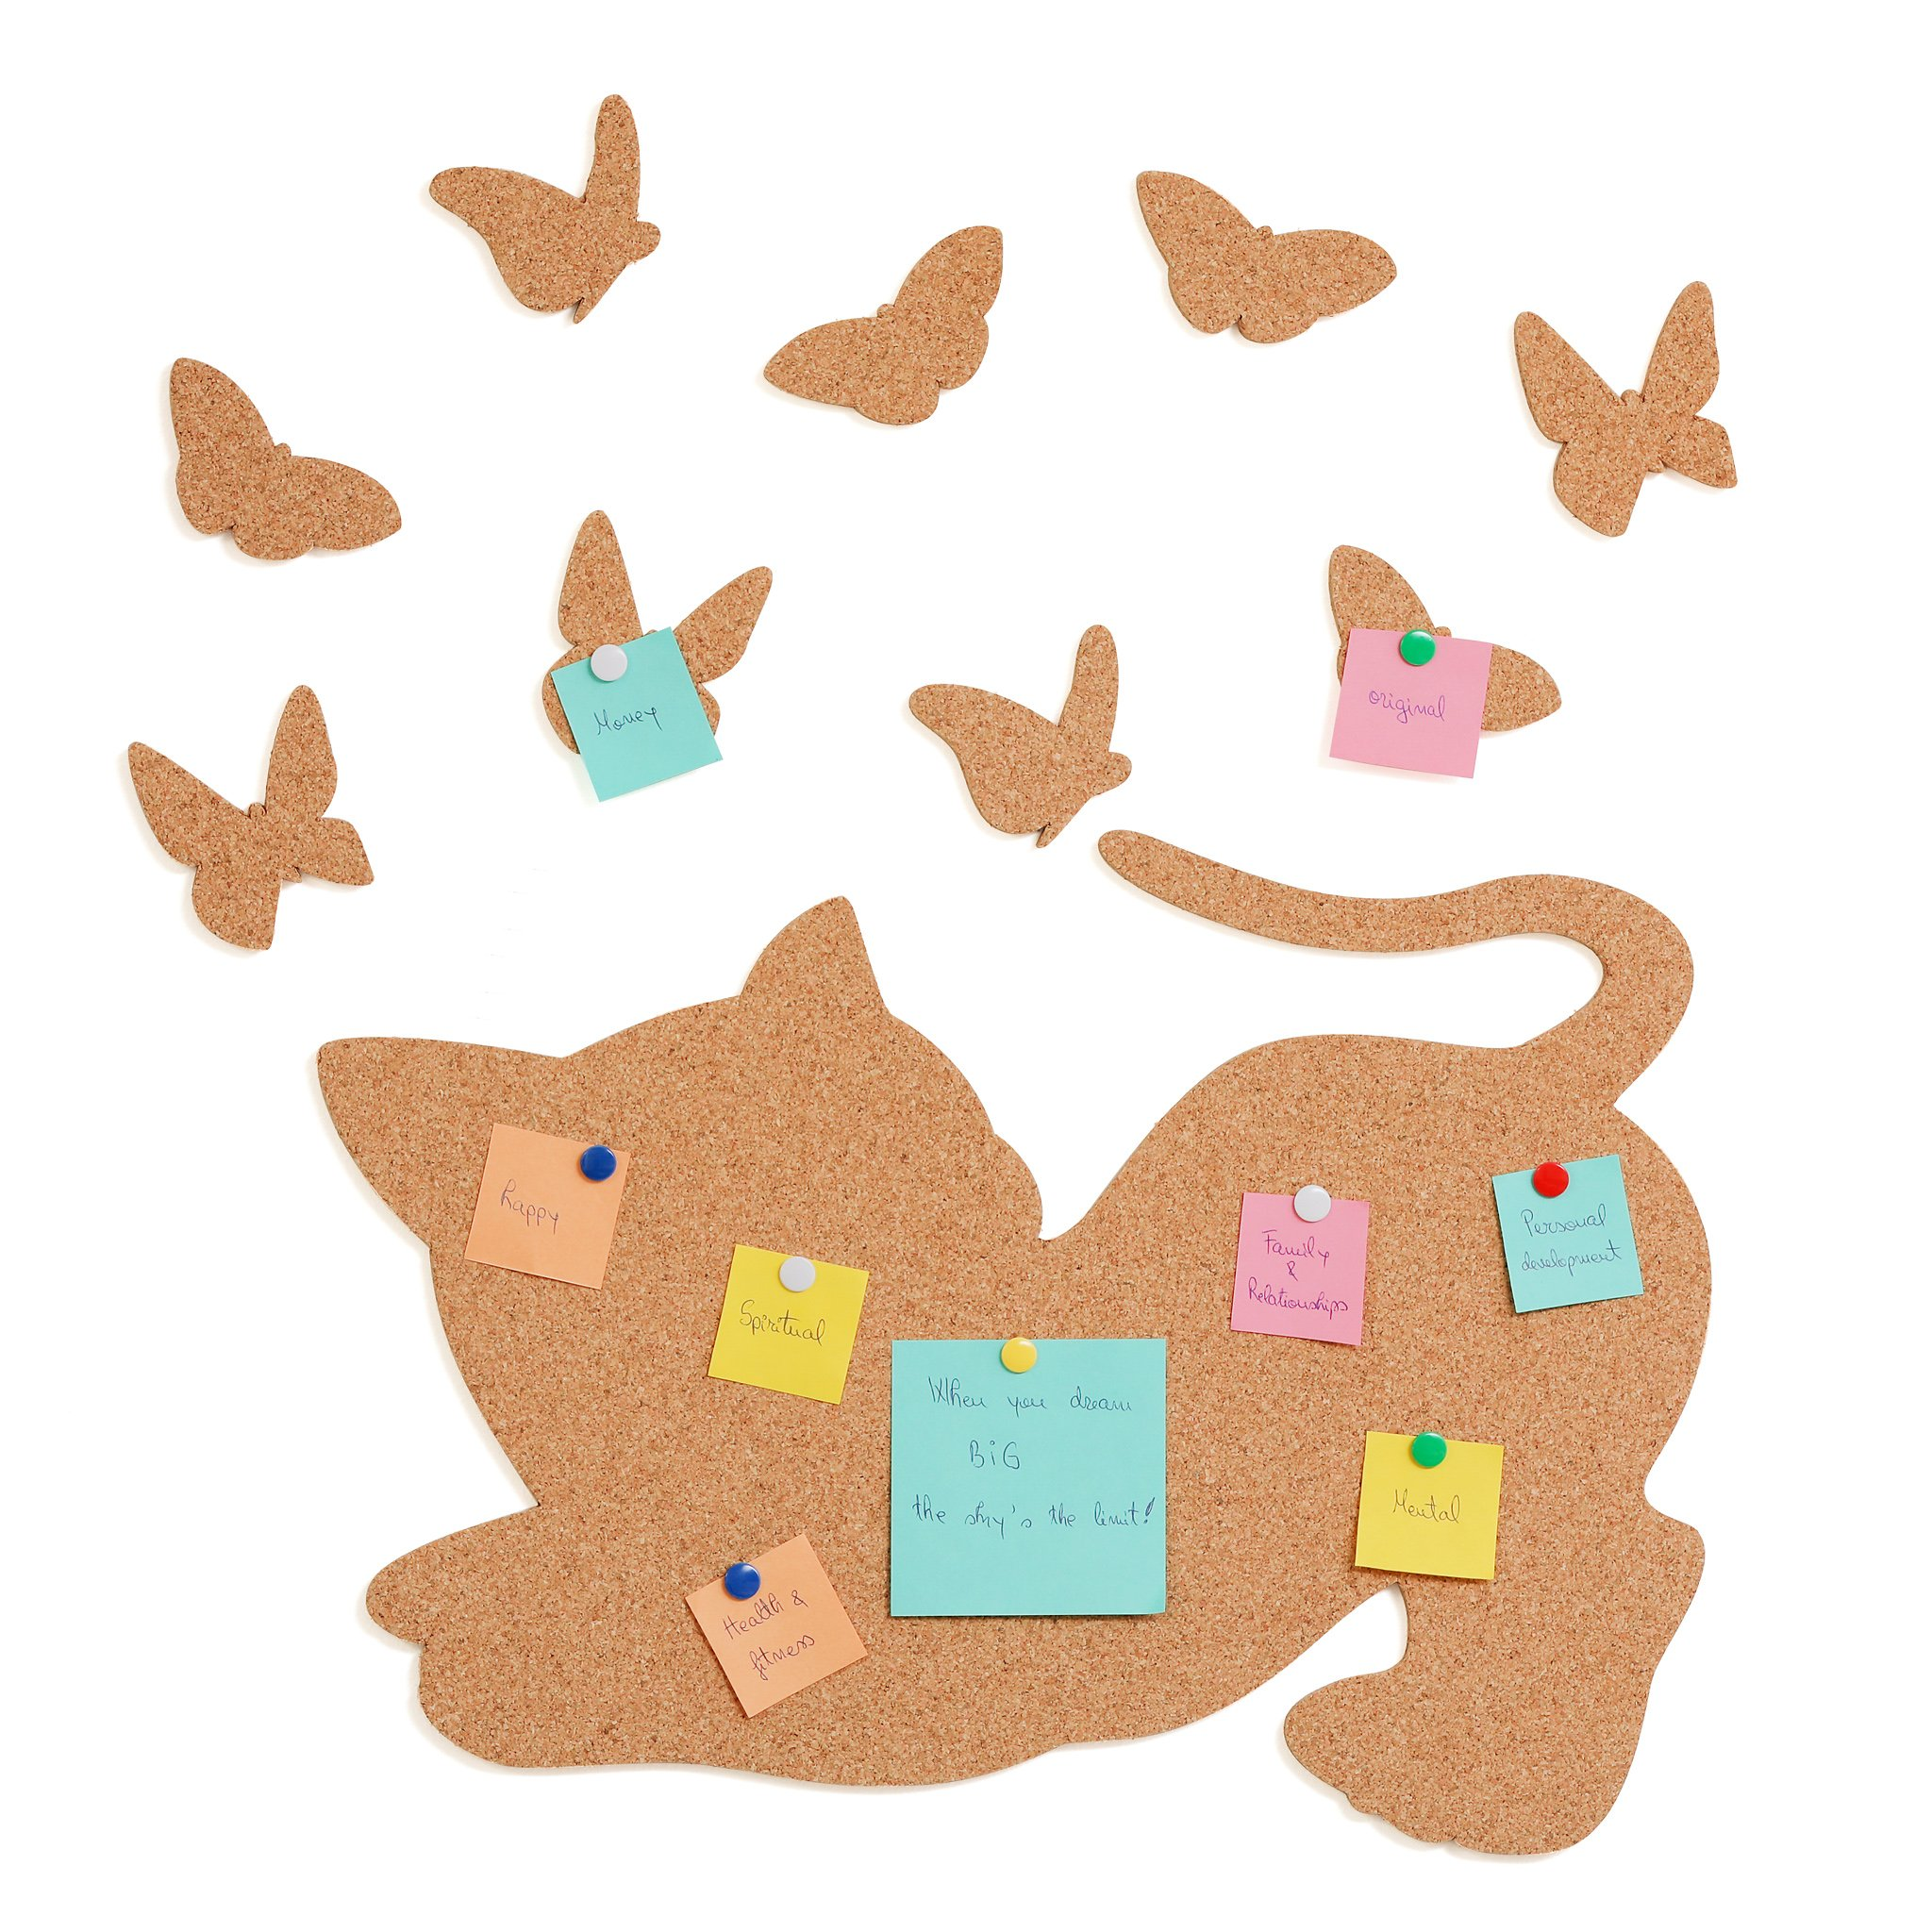 "EmKi Cork board Bulletin board 16.5""x12"", Self-Adhesive back, easy to install, fully tackable. Bundle 20 color thumb tacks and 9 butterflies. Ideal for individual use, crafts for kids/gifts for kids"